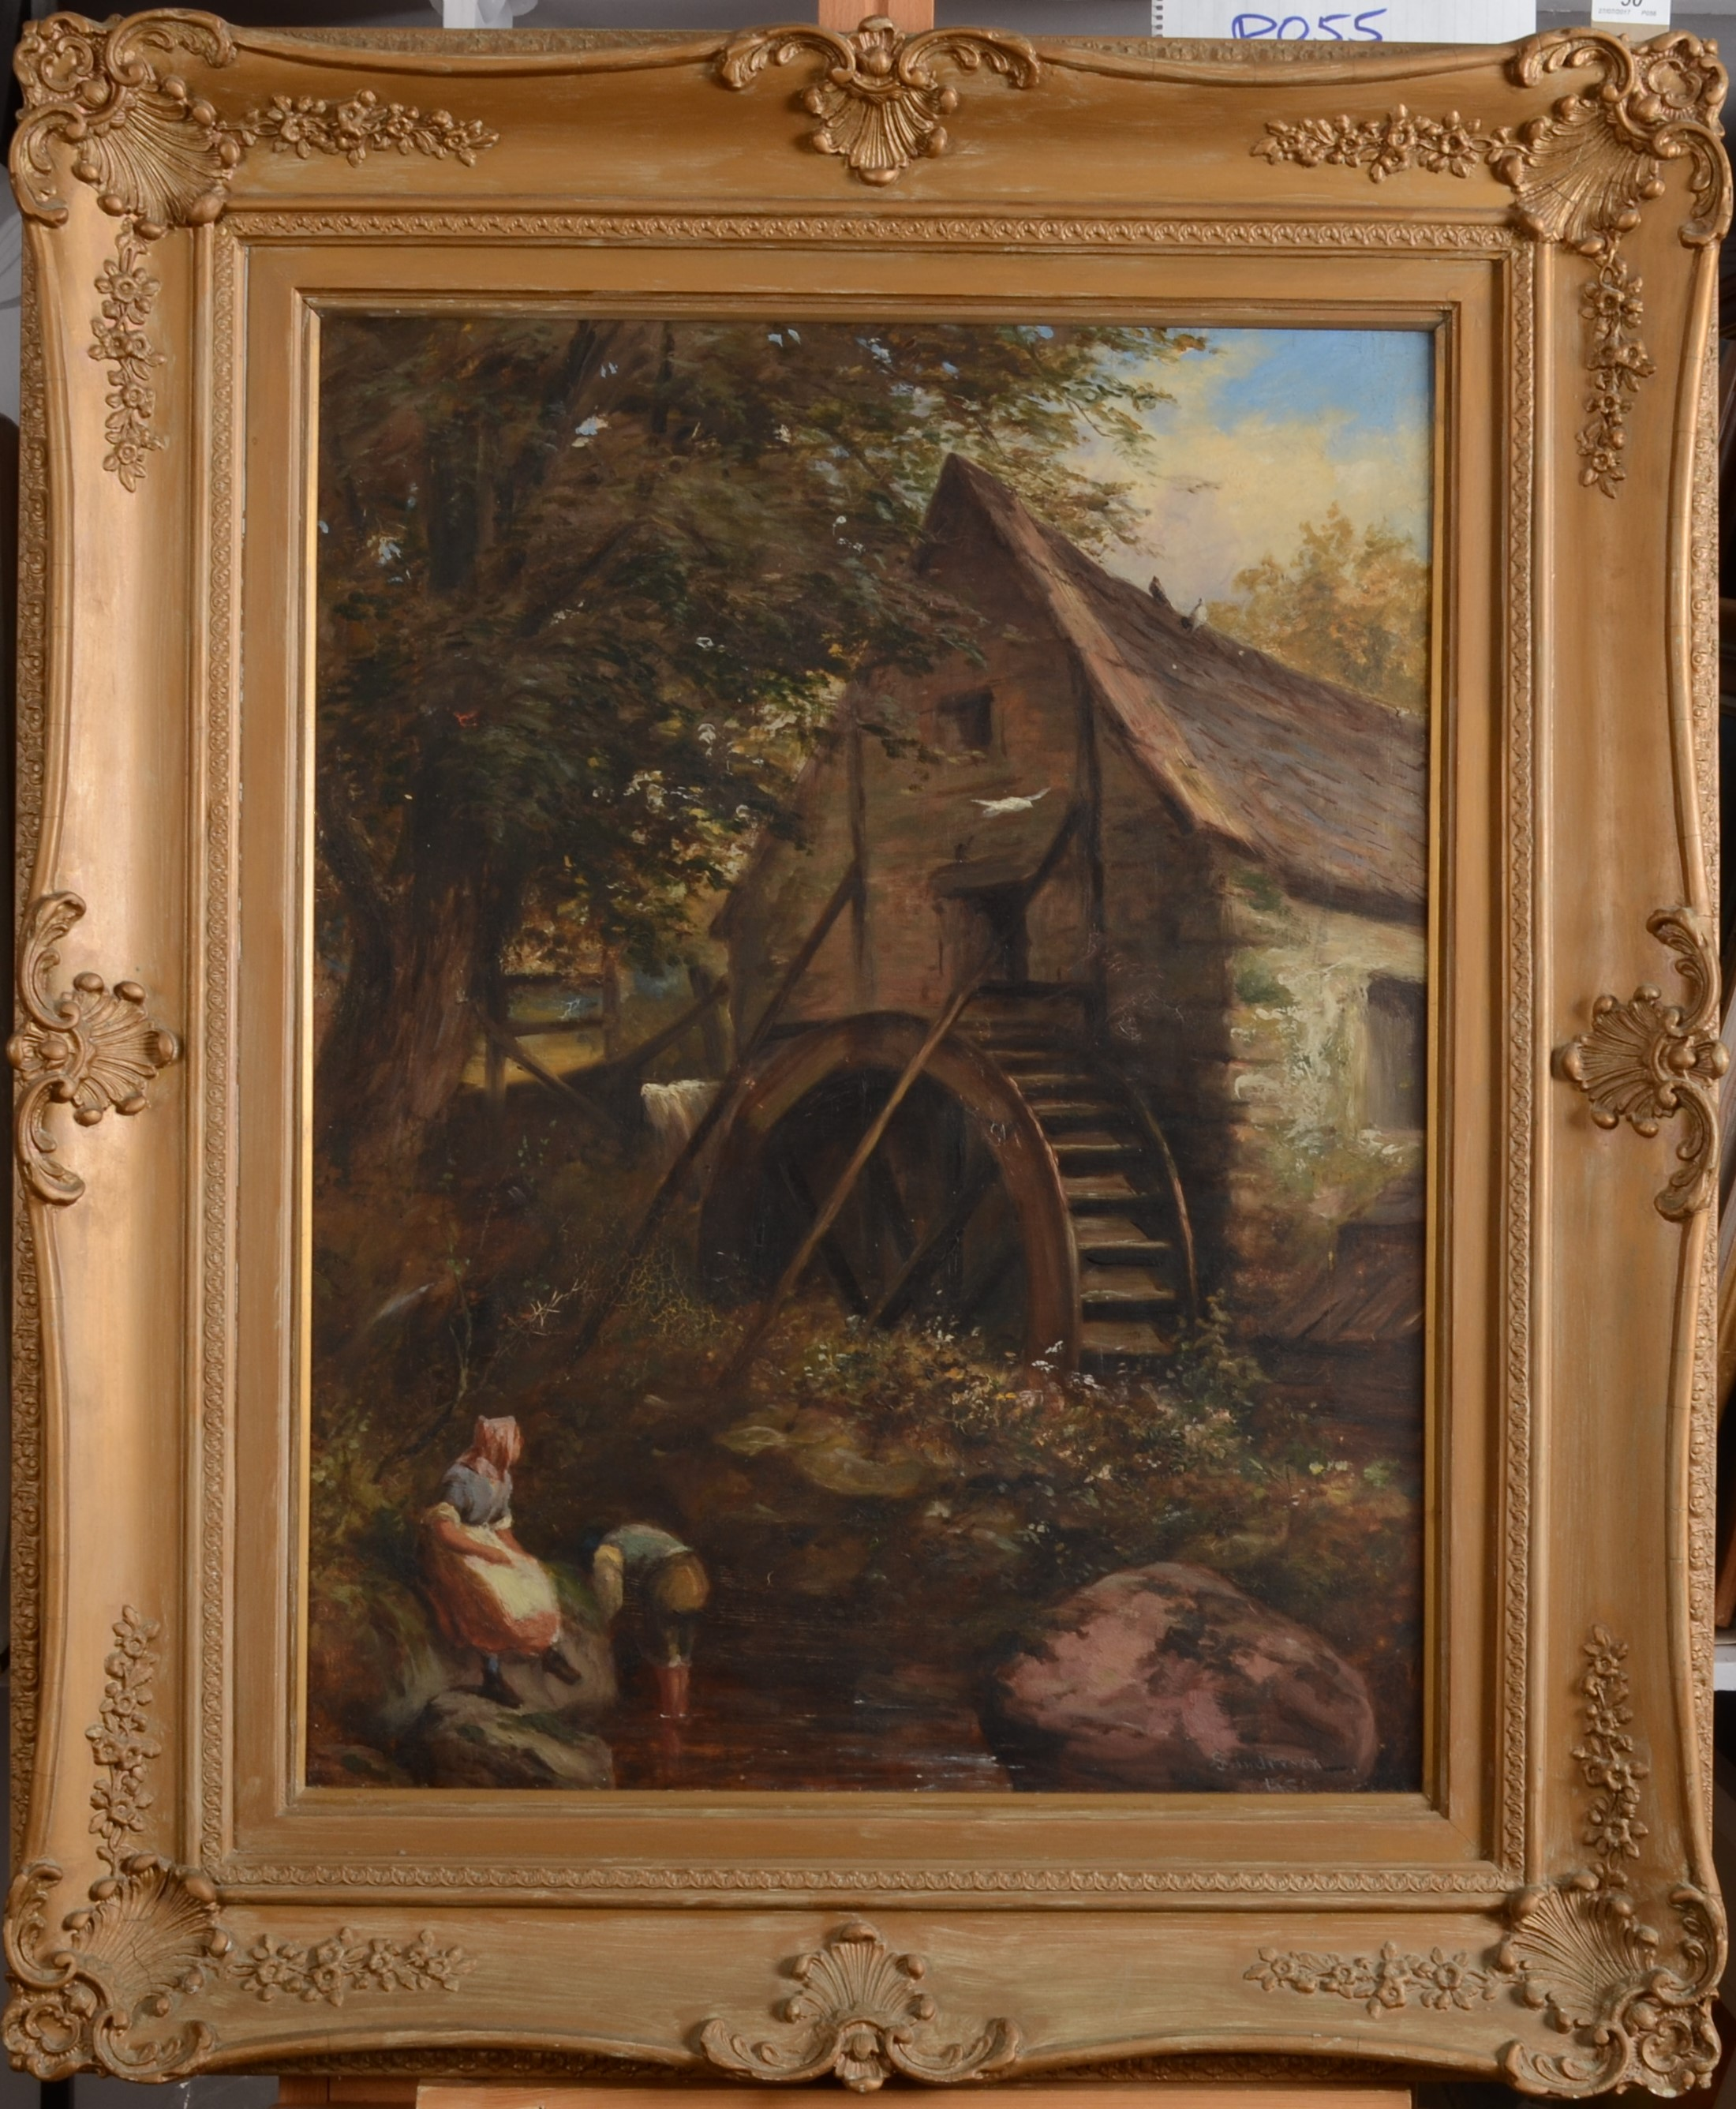 Lot 50 - ROBERT SANDERSON Figures By A Mill Oil on Canvas Signed Indistinctly dated (18??) 69 x 54 cm